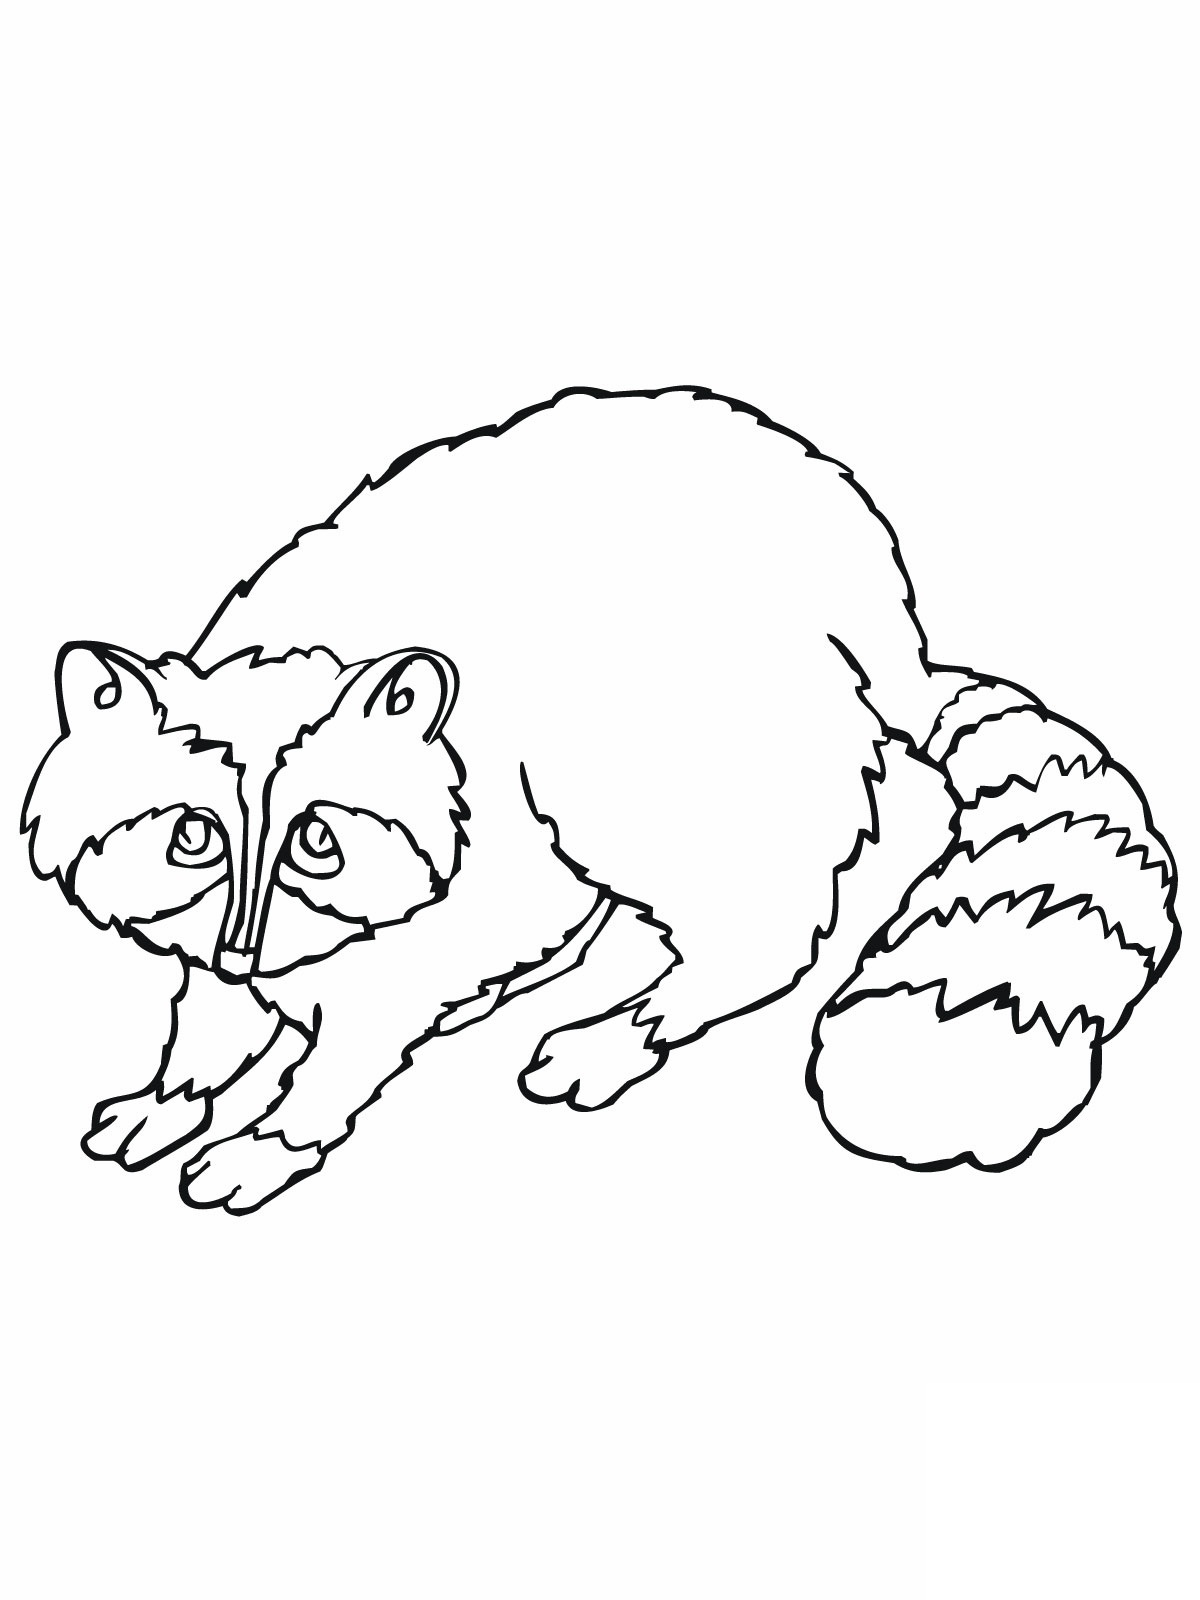 Coloring pages raccoon - Raccoon Coloring Sheets